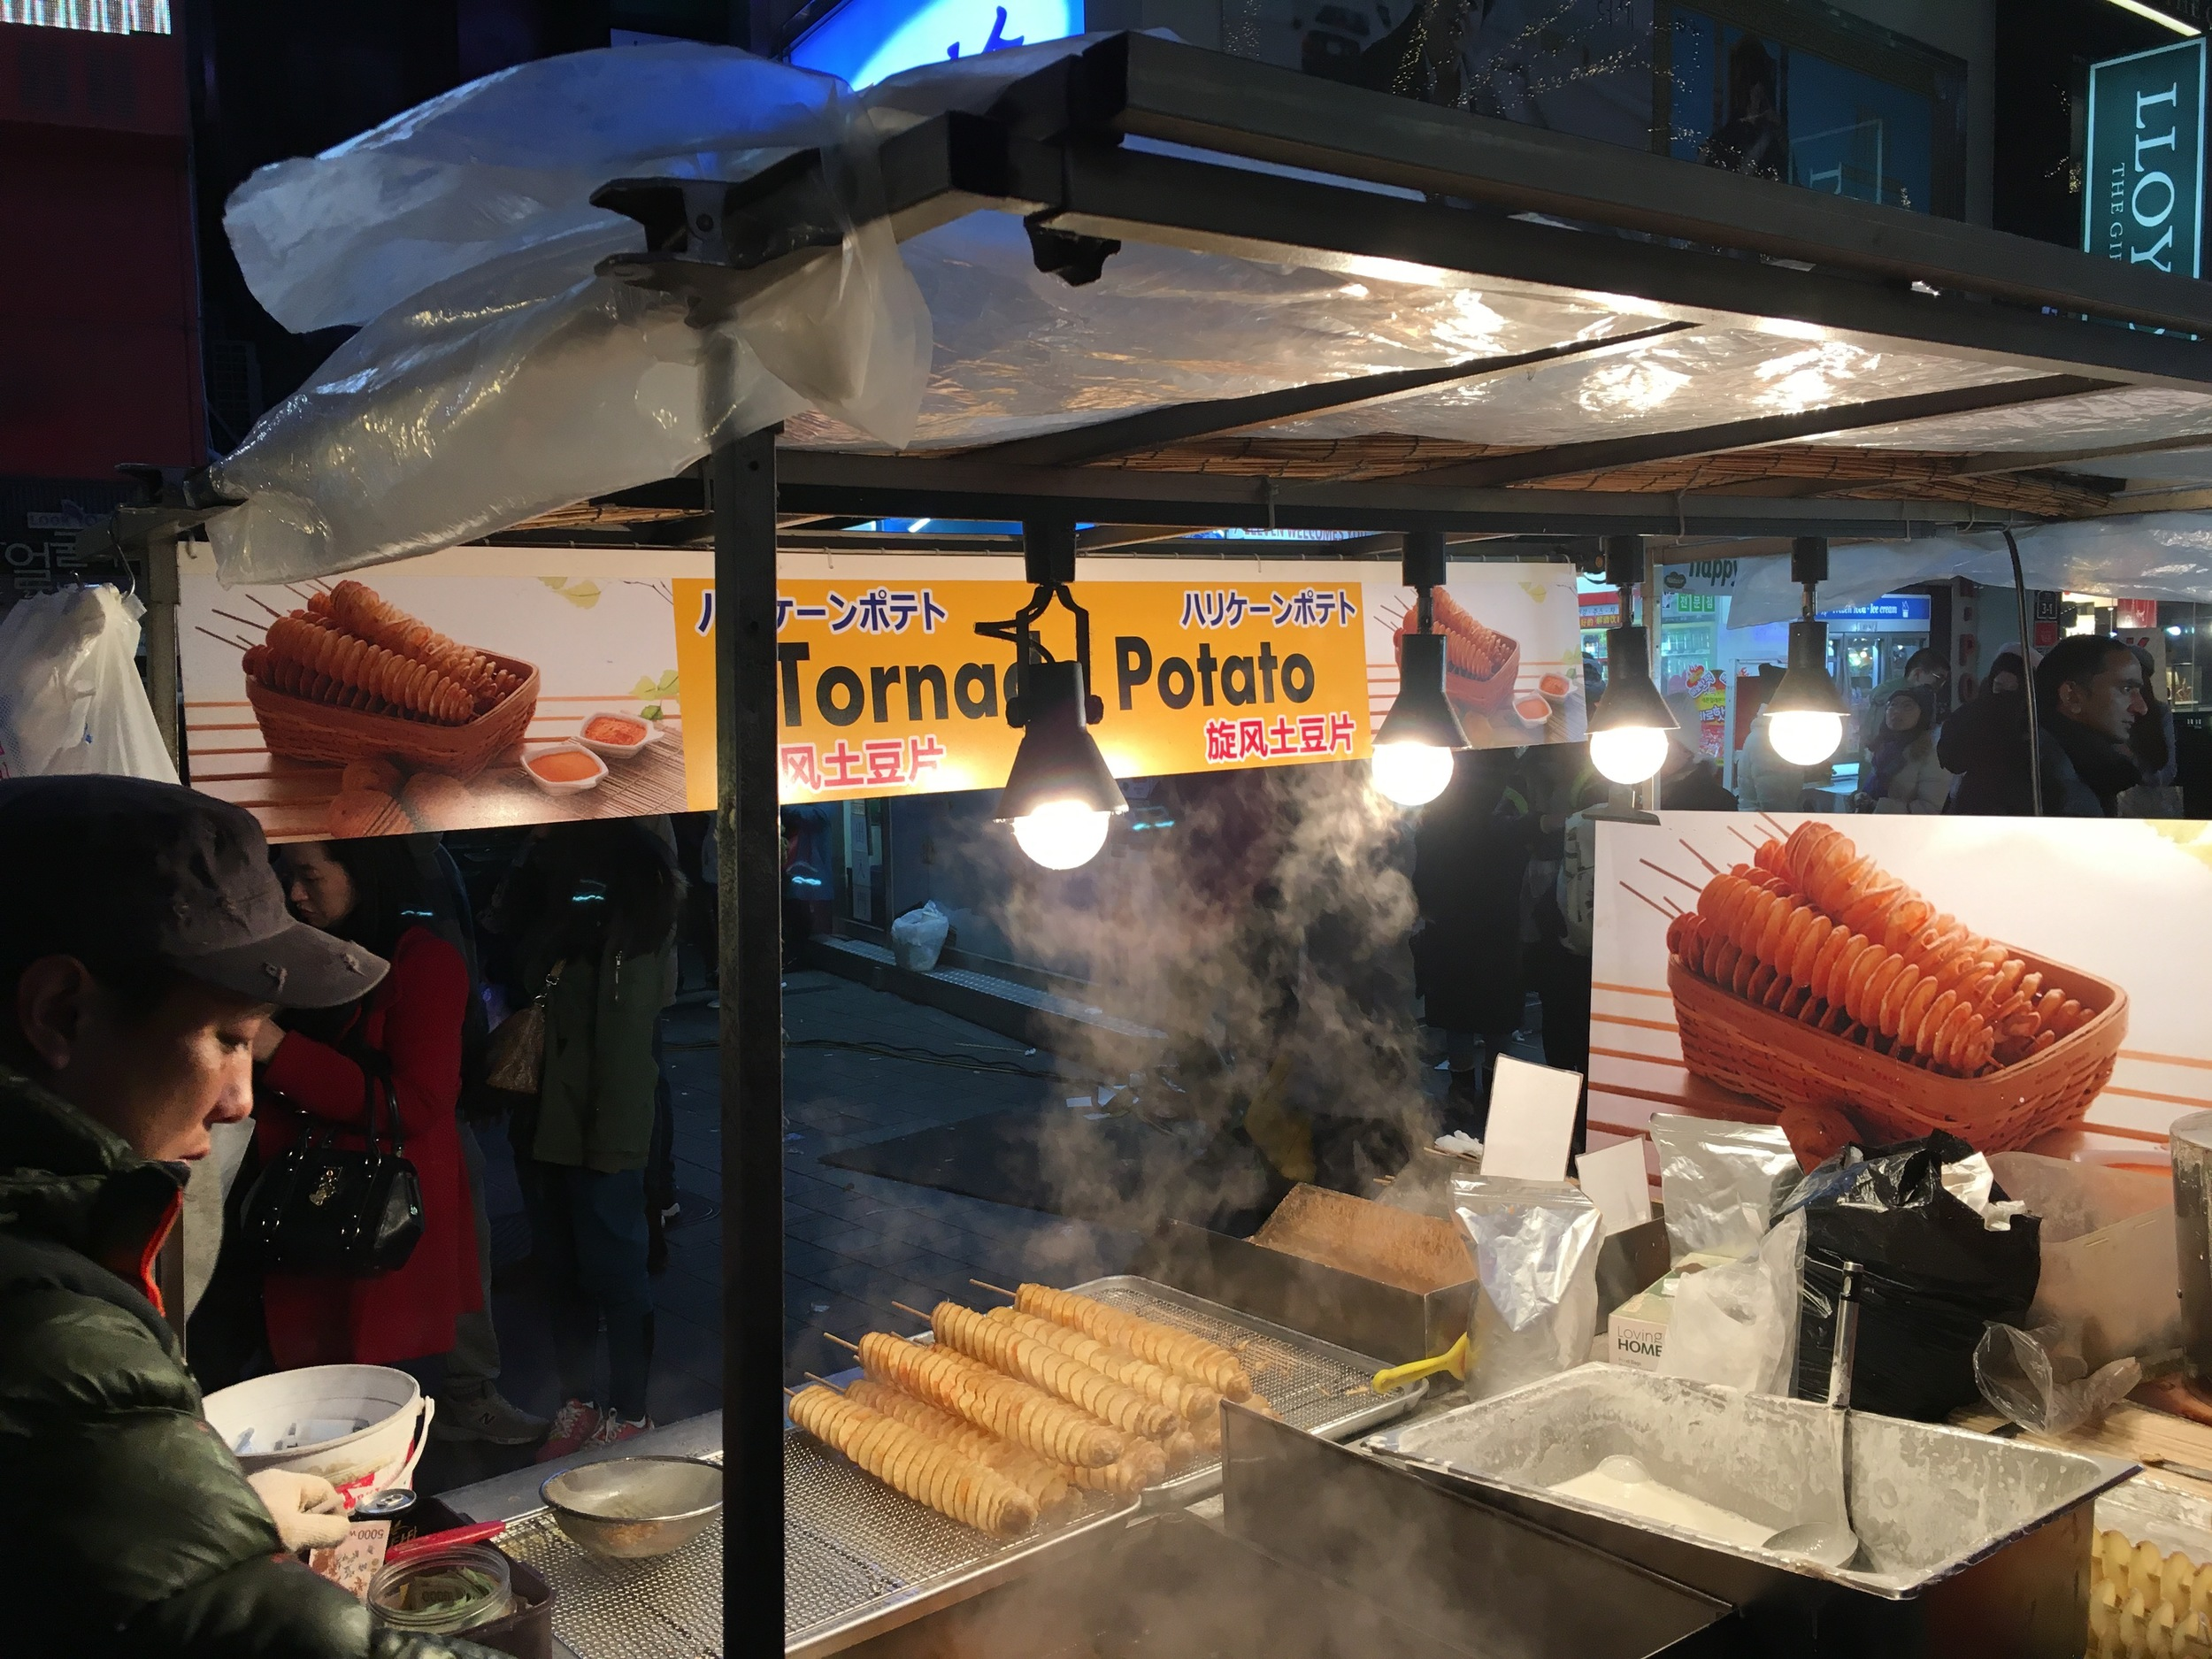 Tornado Potato is basically Seoul's unofficial mascot. Street food stalls are ephemeral so I didn't recommend any below, but absolutely eat all that you can